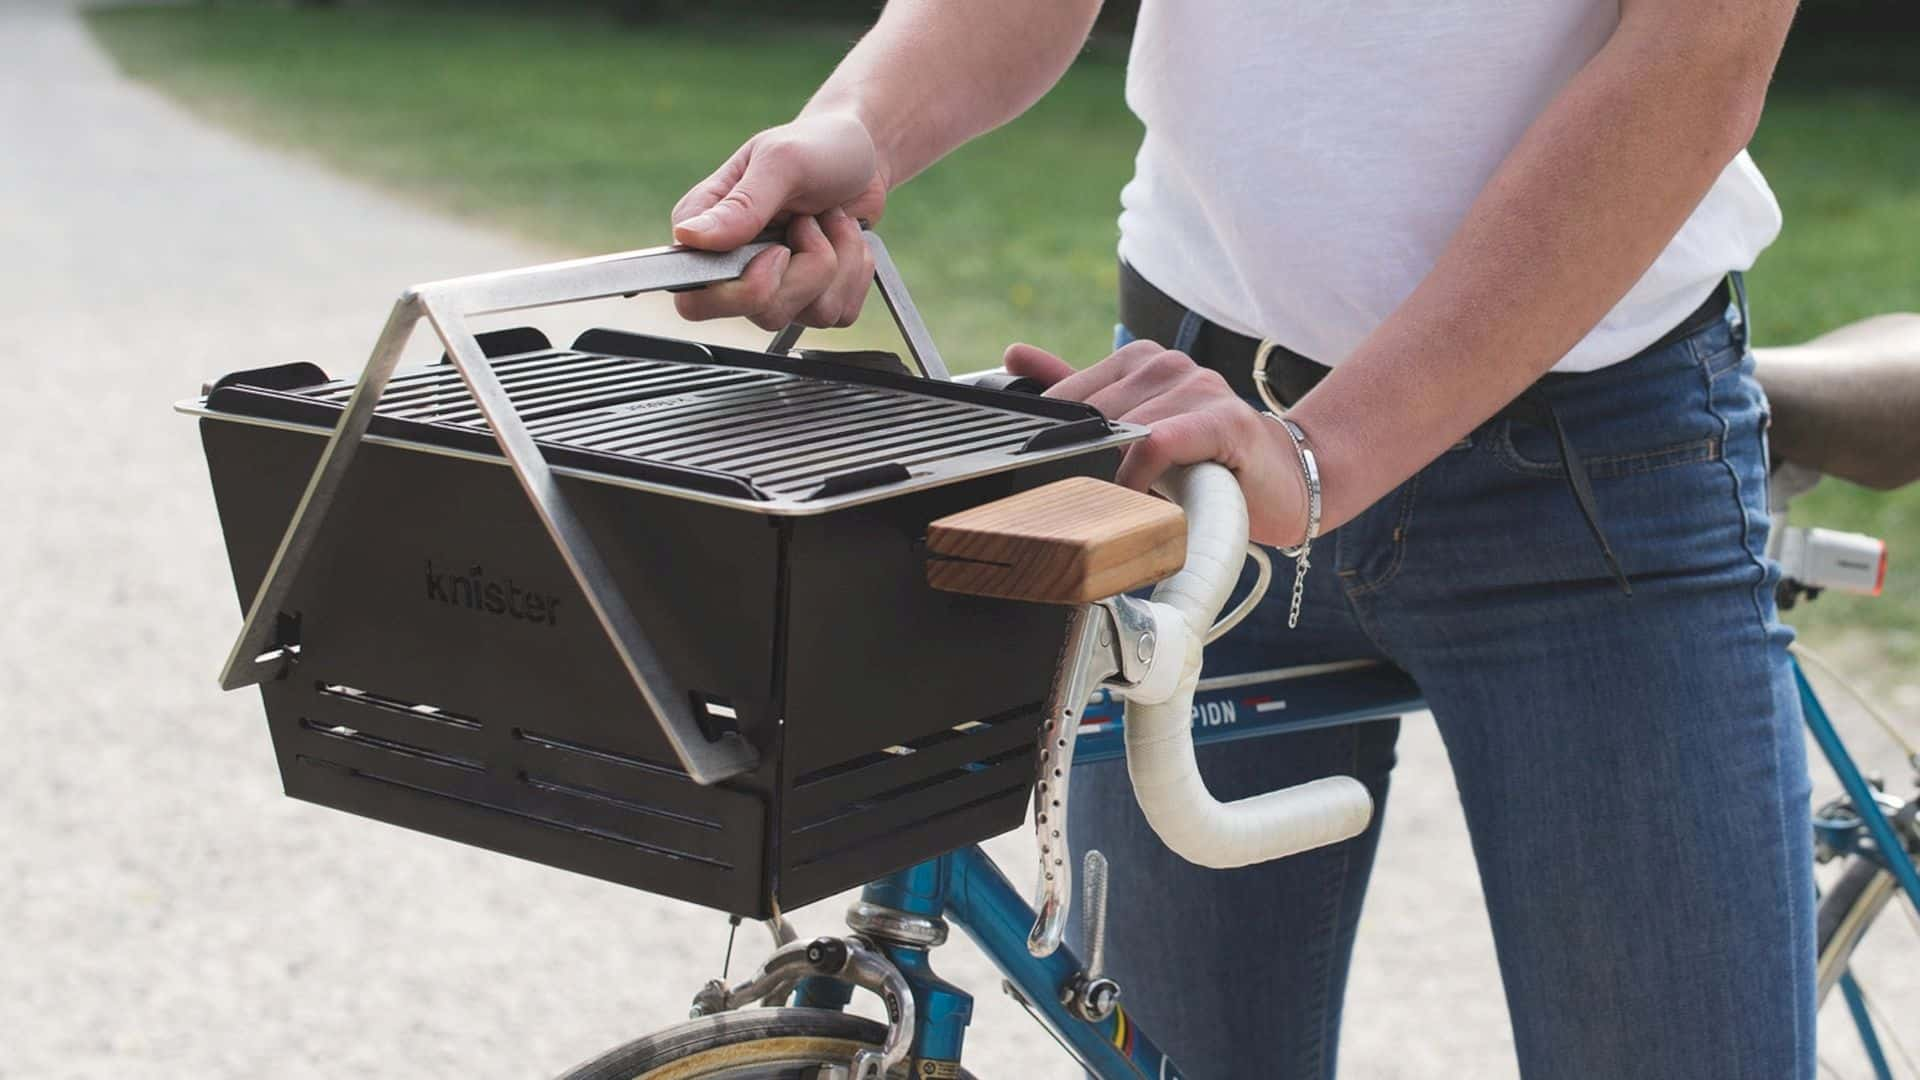 Knister Grill – The Extendable BBQ You Can transport by Bike